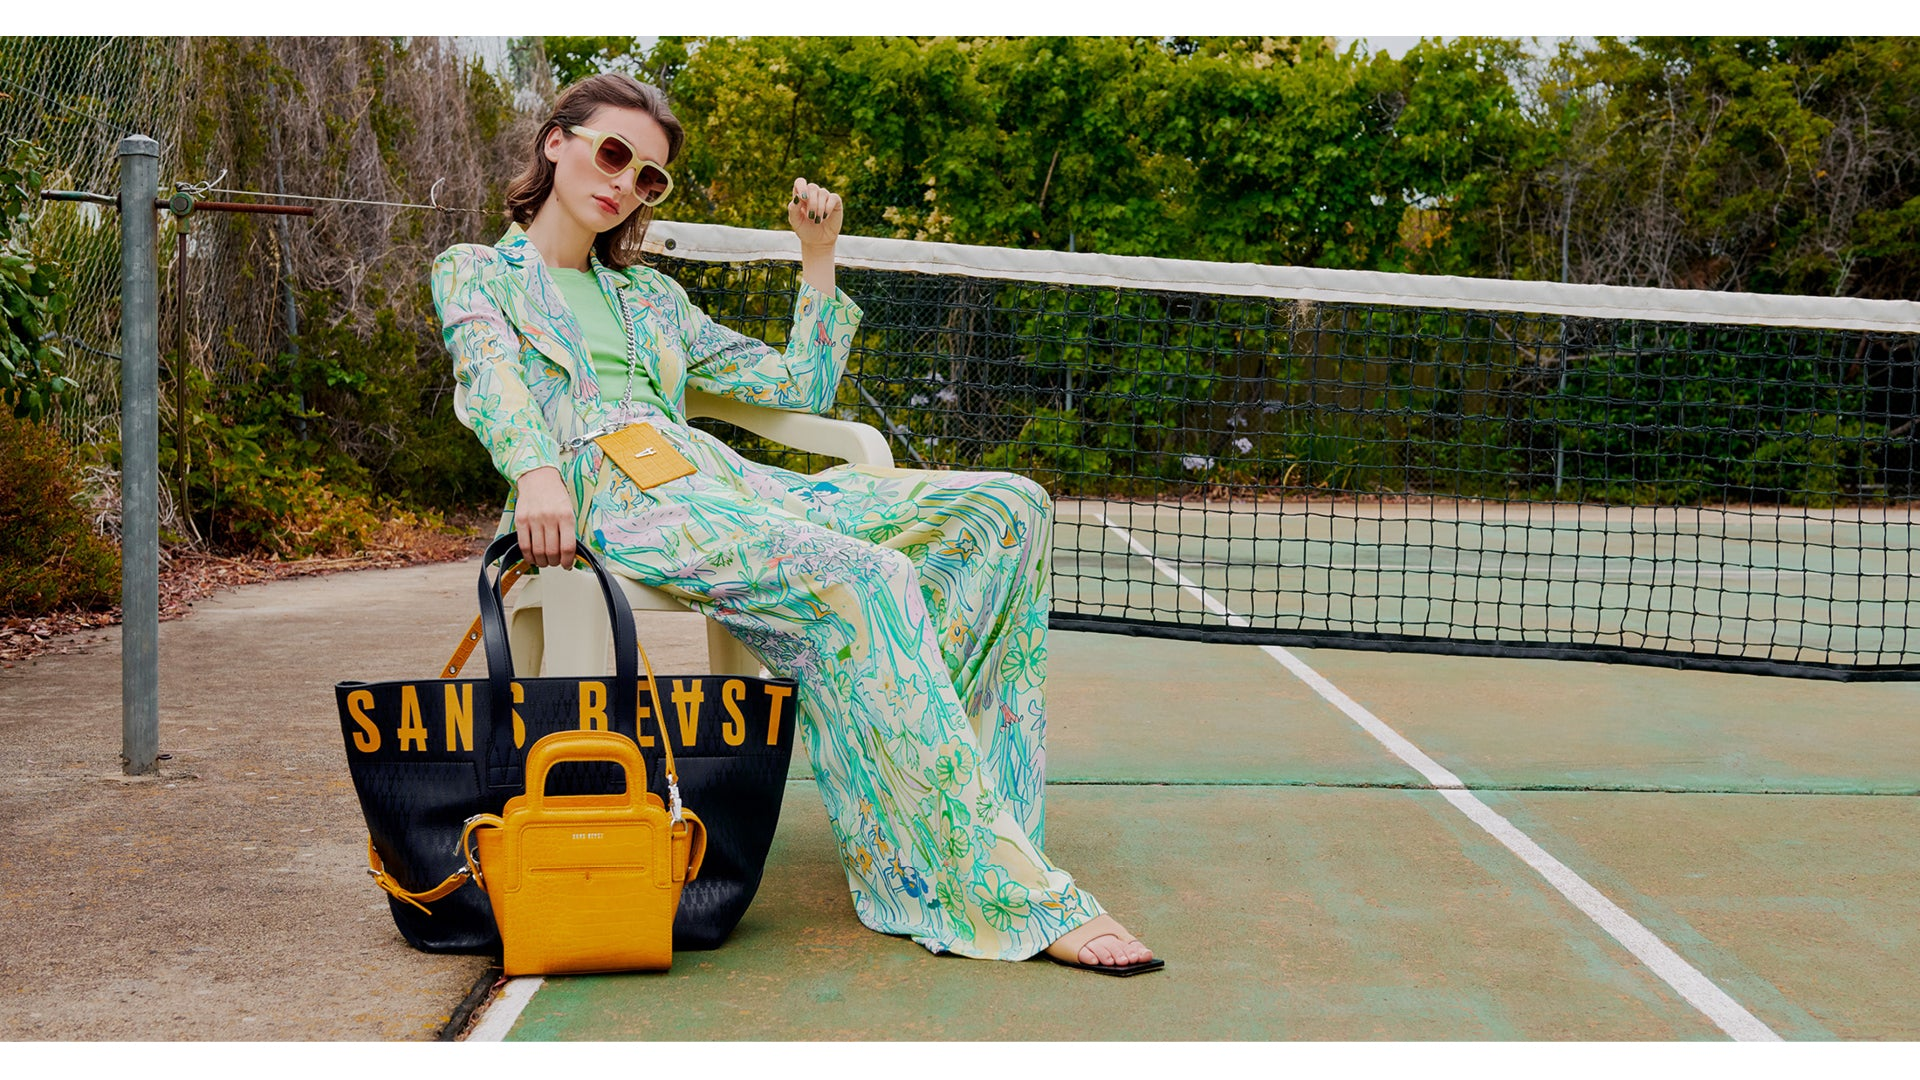 Juliette on a tennis court in a floral pantsuit, with The Activist Tote in Midnight Pebble + The Long Lunch Tote in Mustard Croco.